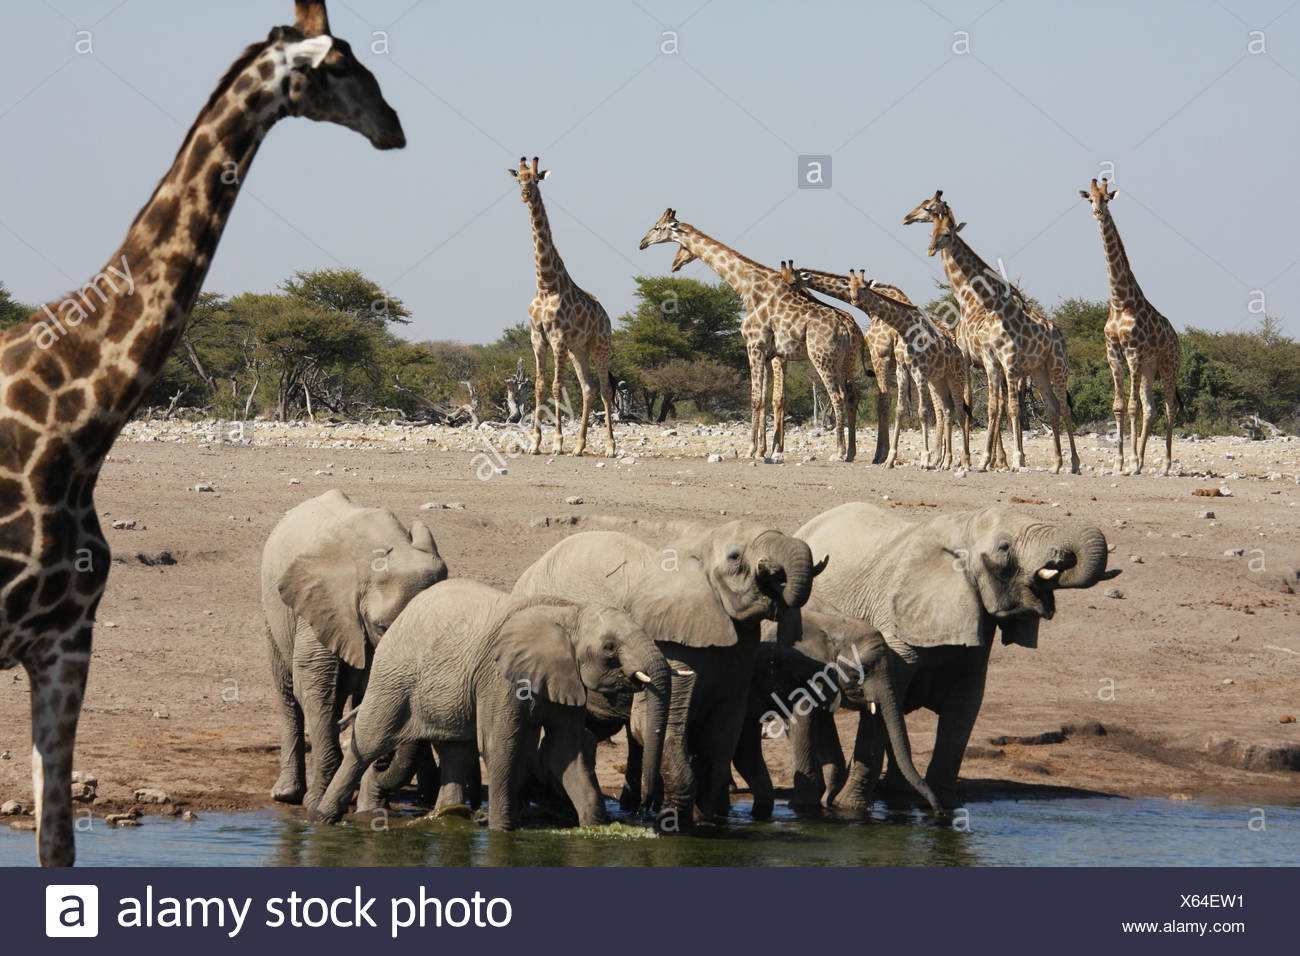 Elephants and giraffes drinking at watering hole, Namibia - Stock Image